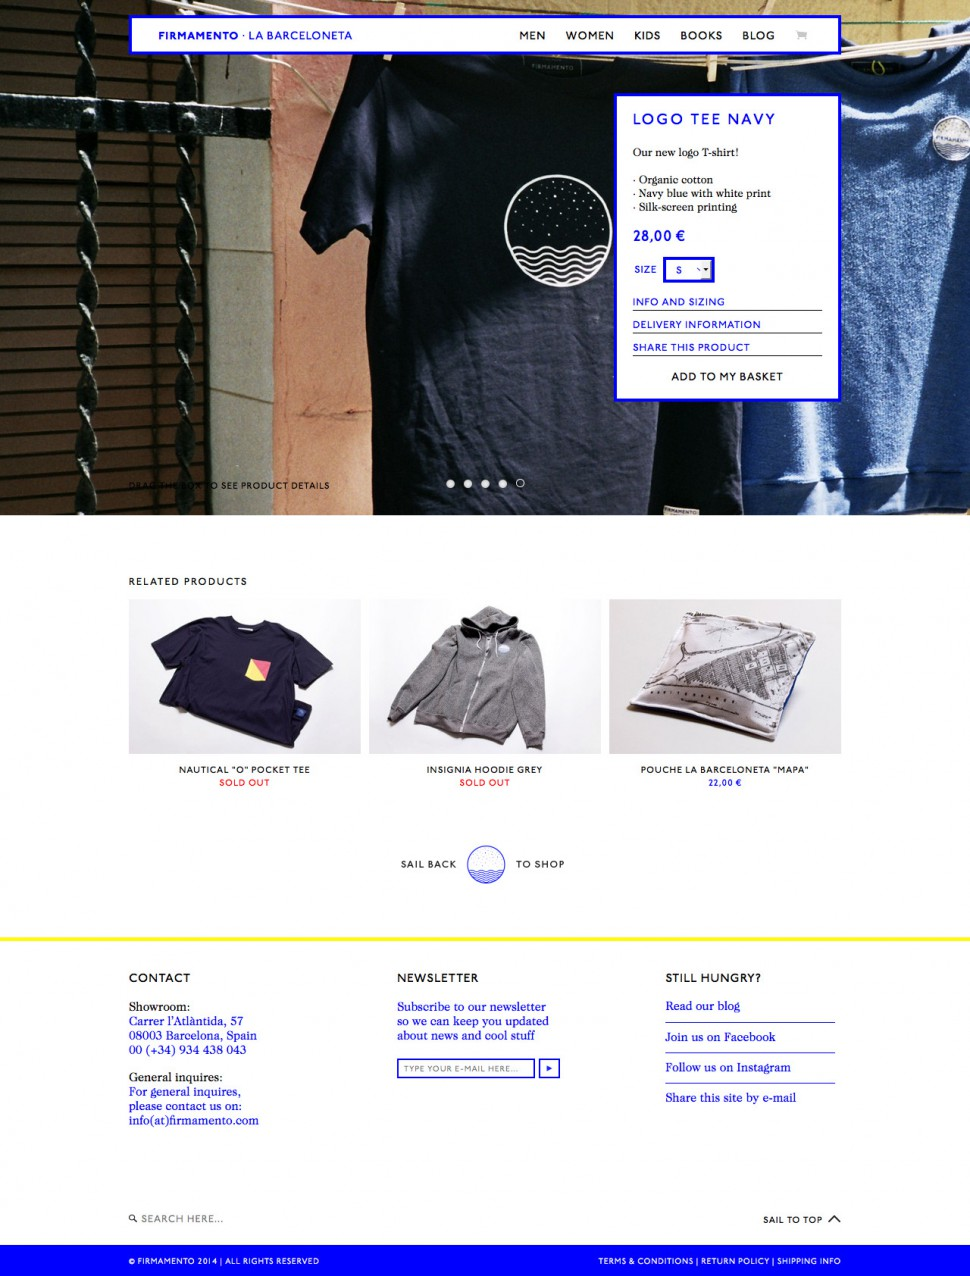 firmamento - product page